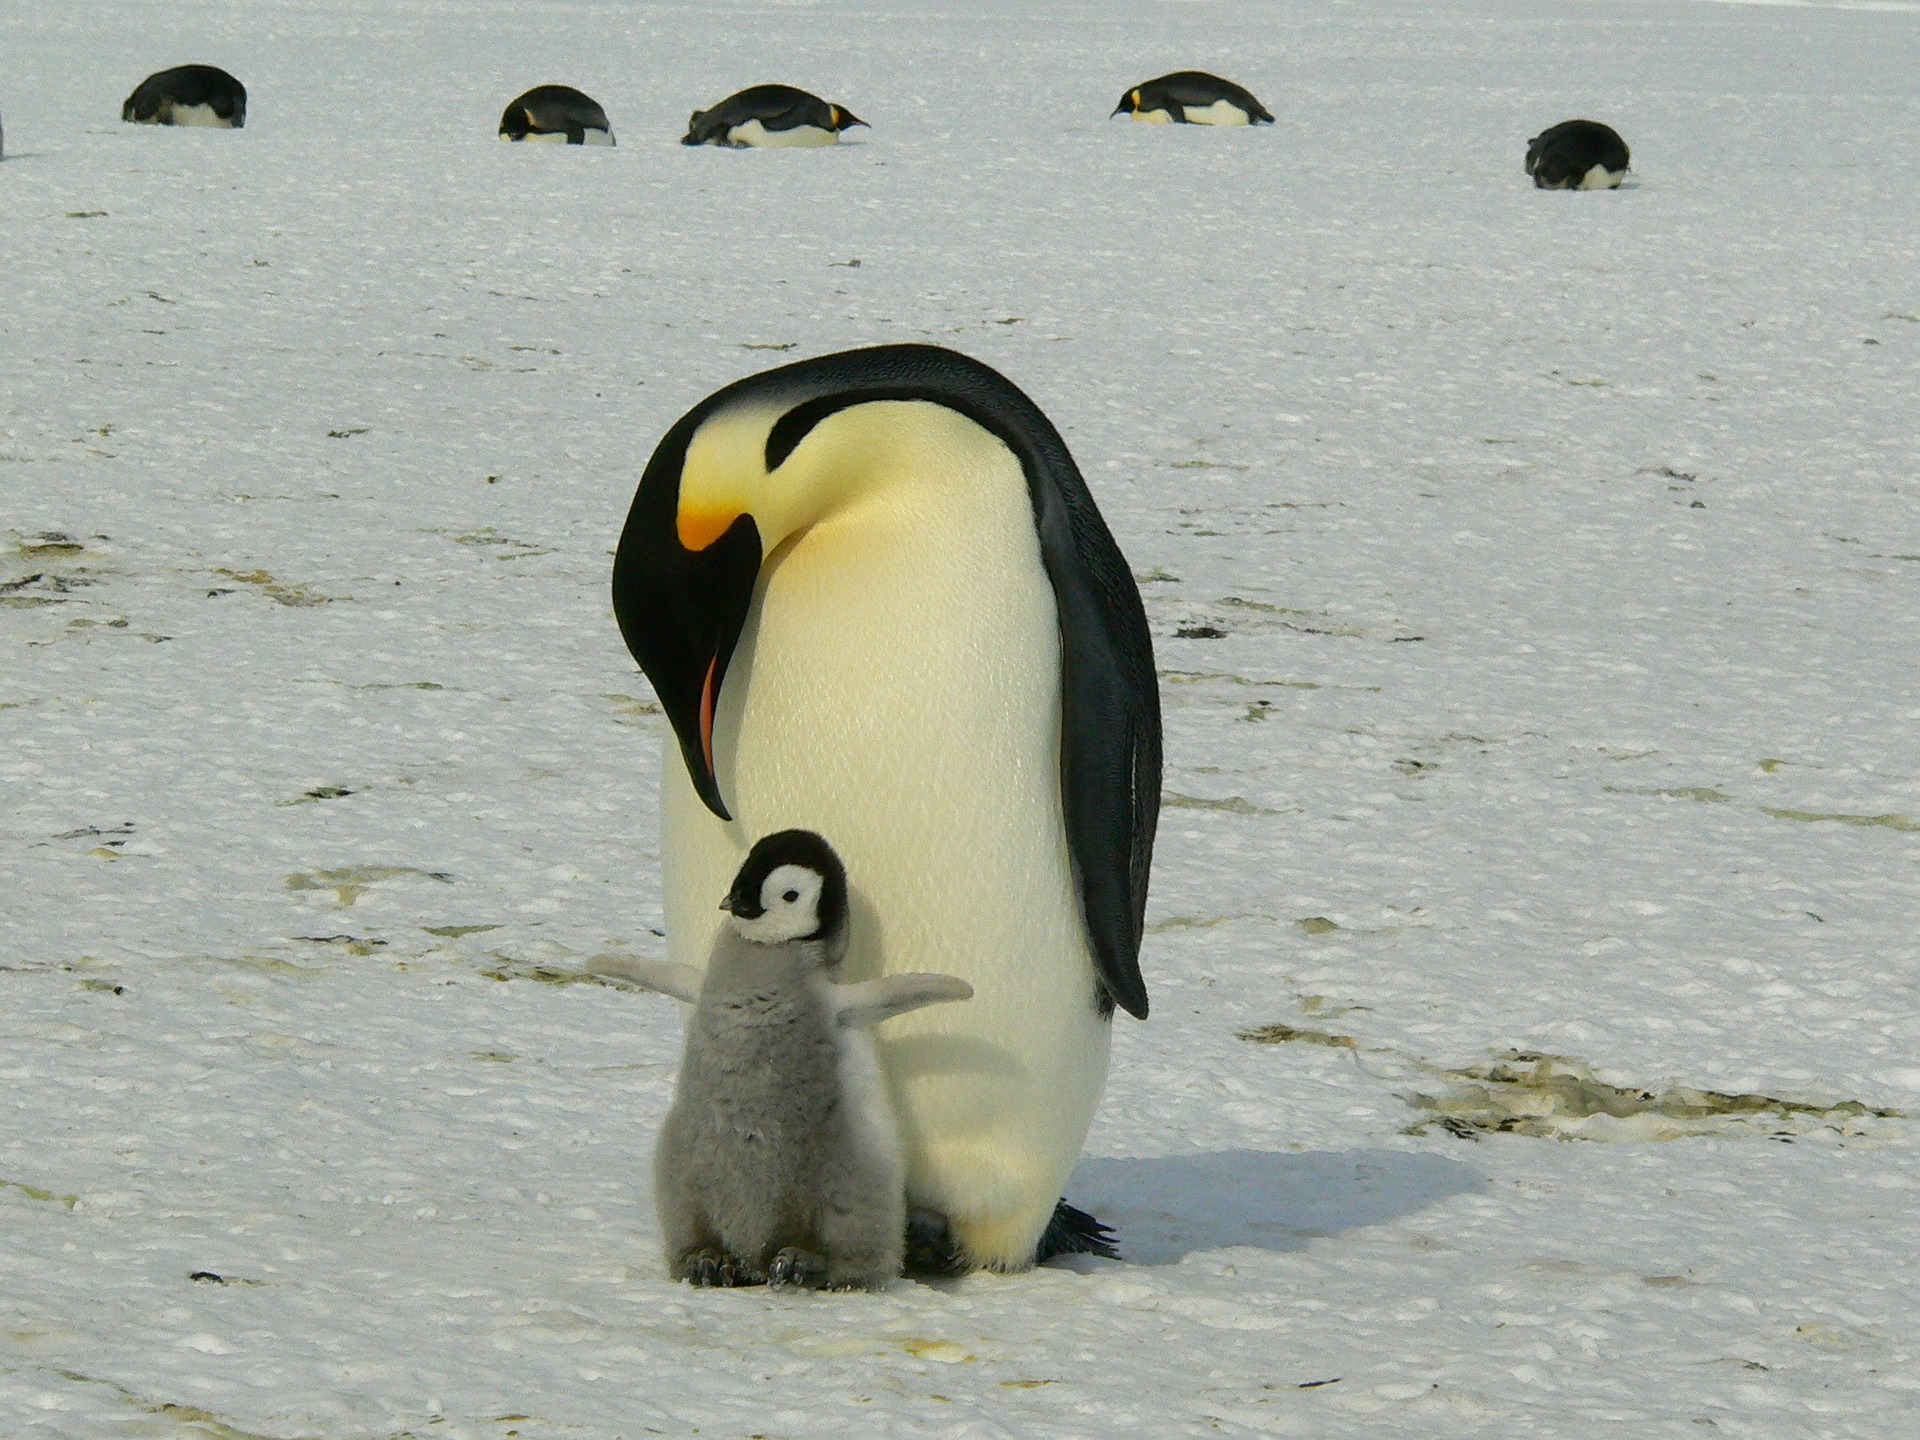 penguins-429134_1920.jpg